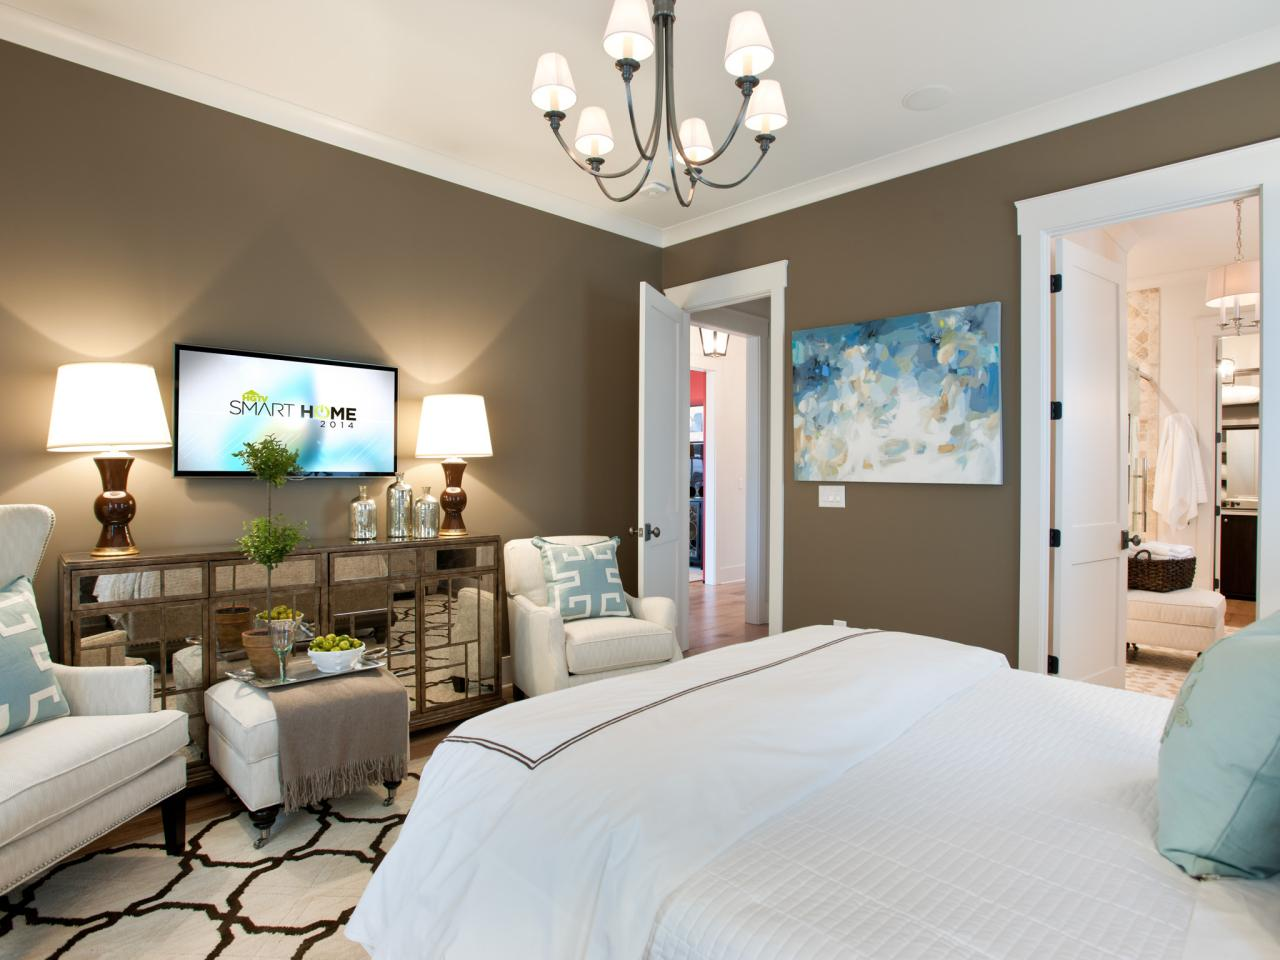 Master bedroom from hgtv smart home 2014 hgtv smart home for Master bedrooms